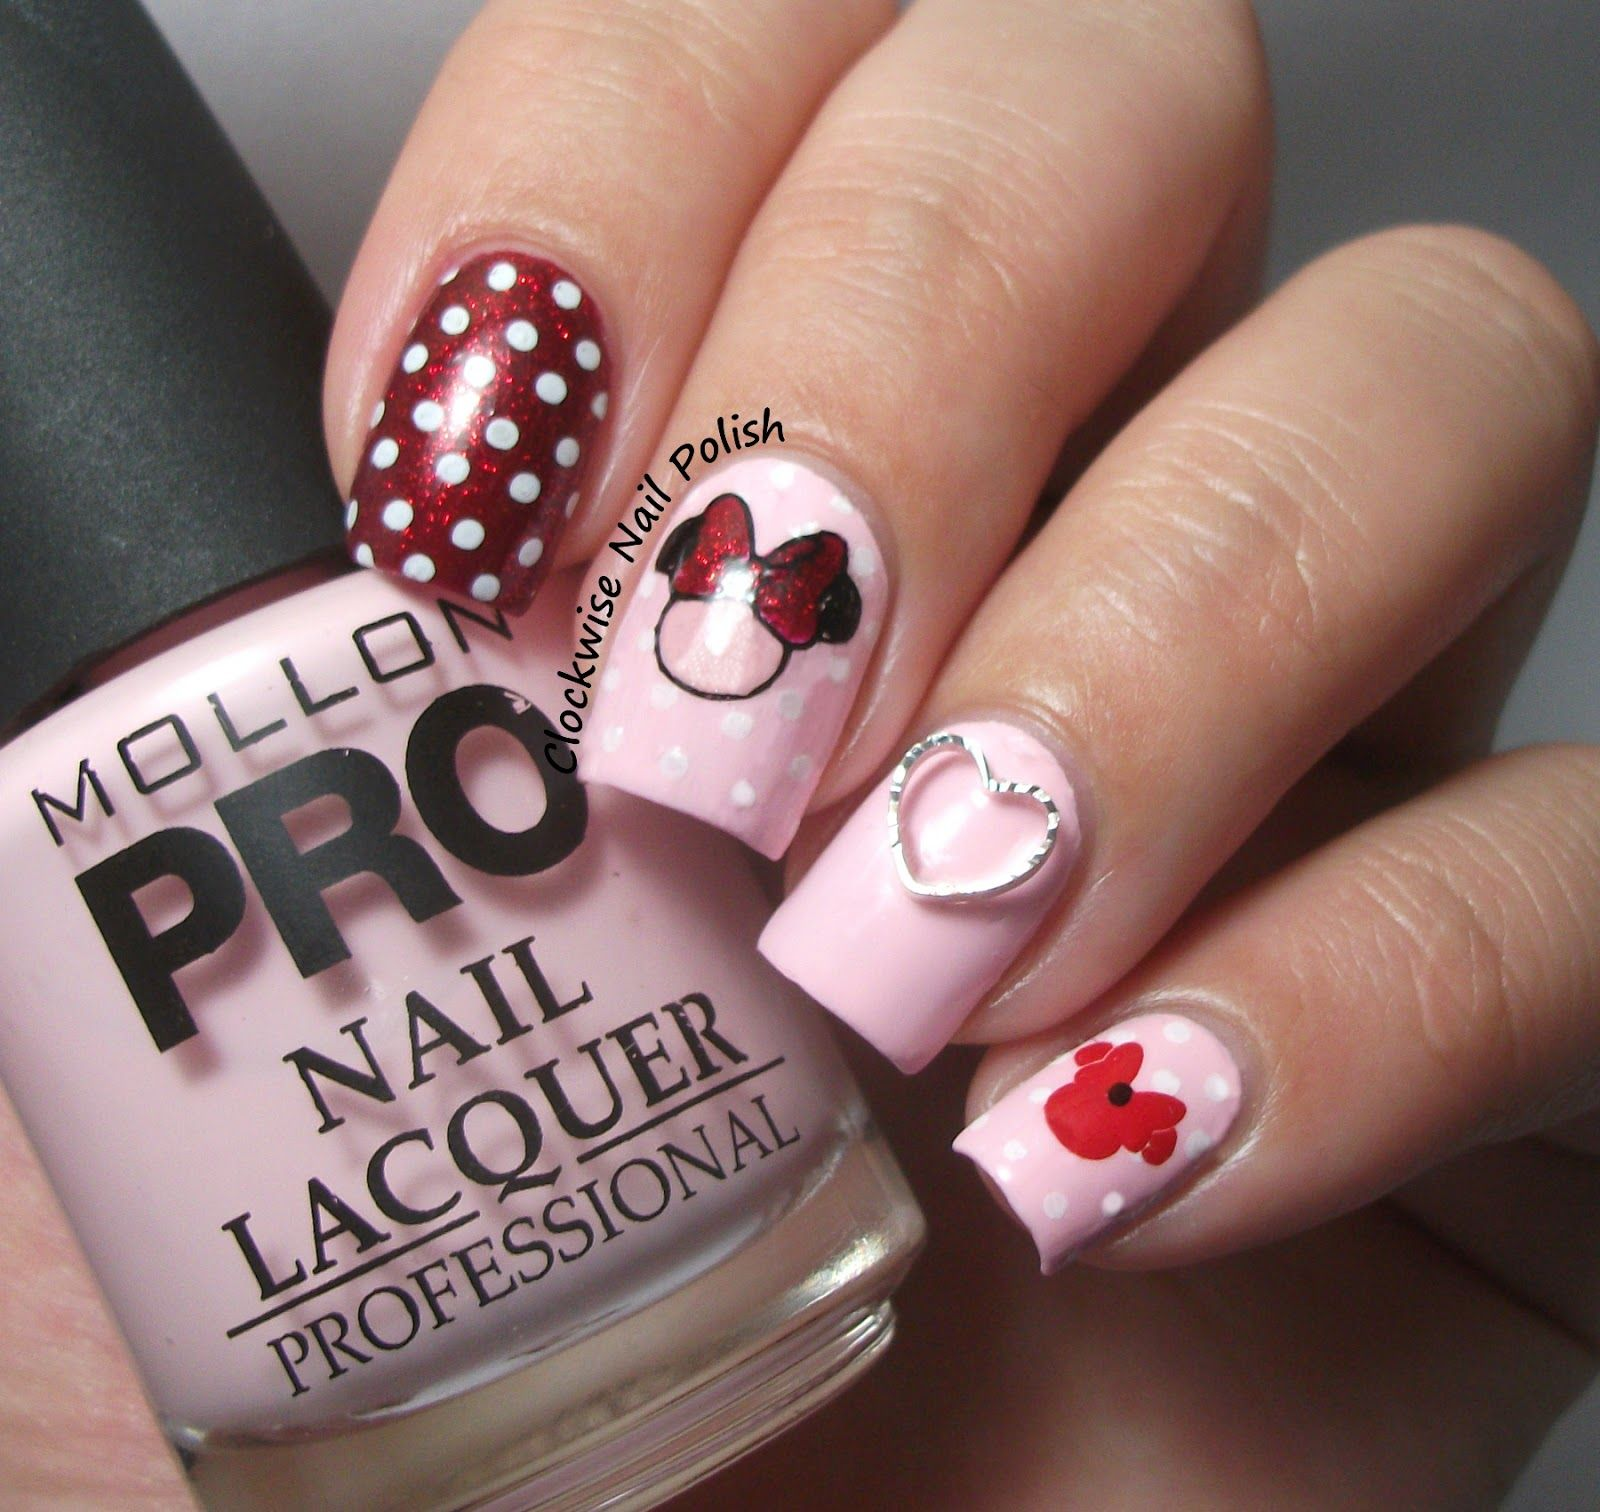 Mollon Pro 180 Amor Mini Nail Art Pinterest Amor Minis And